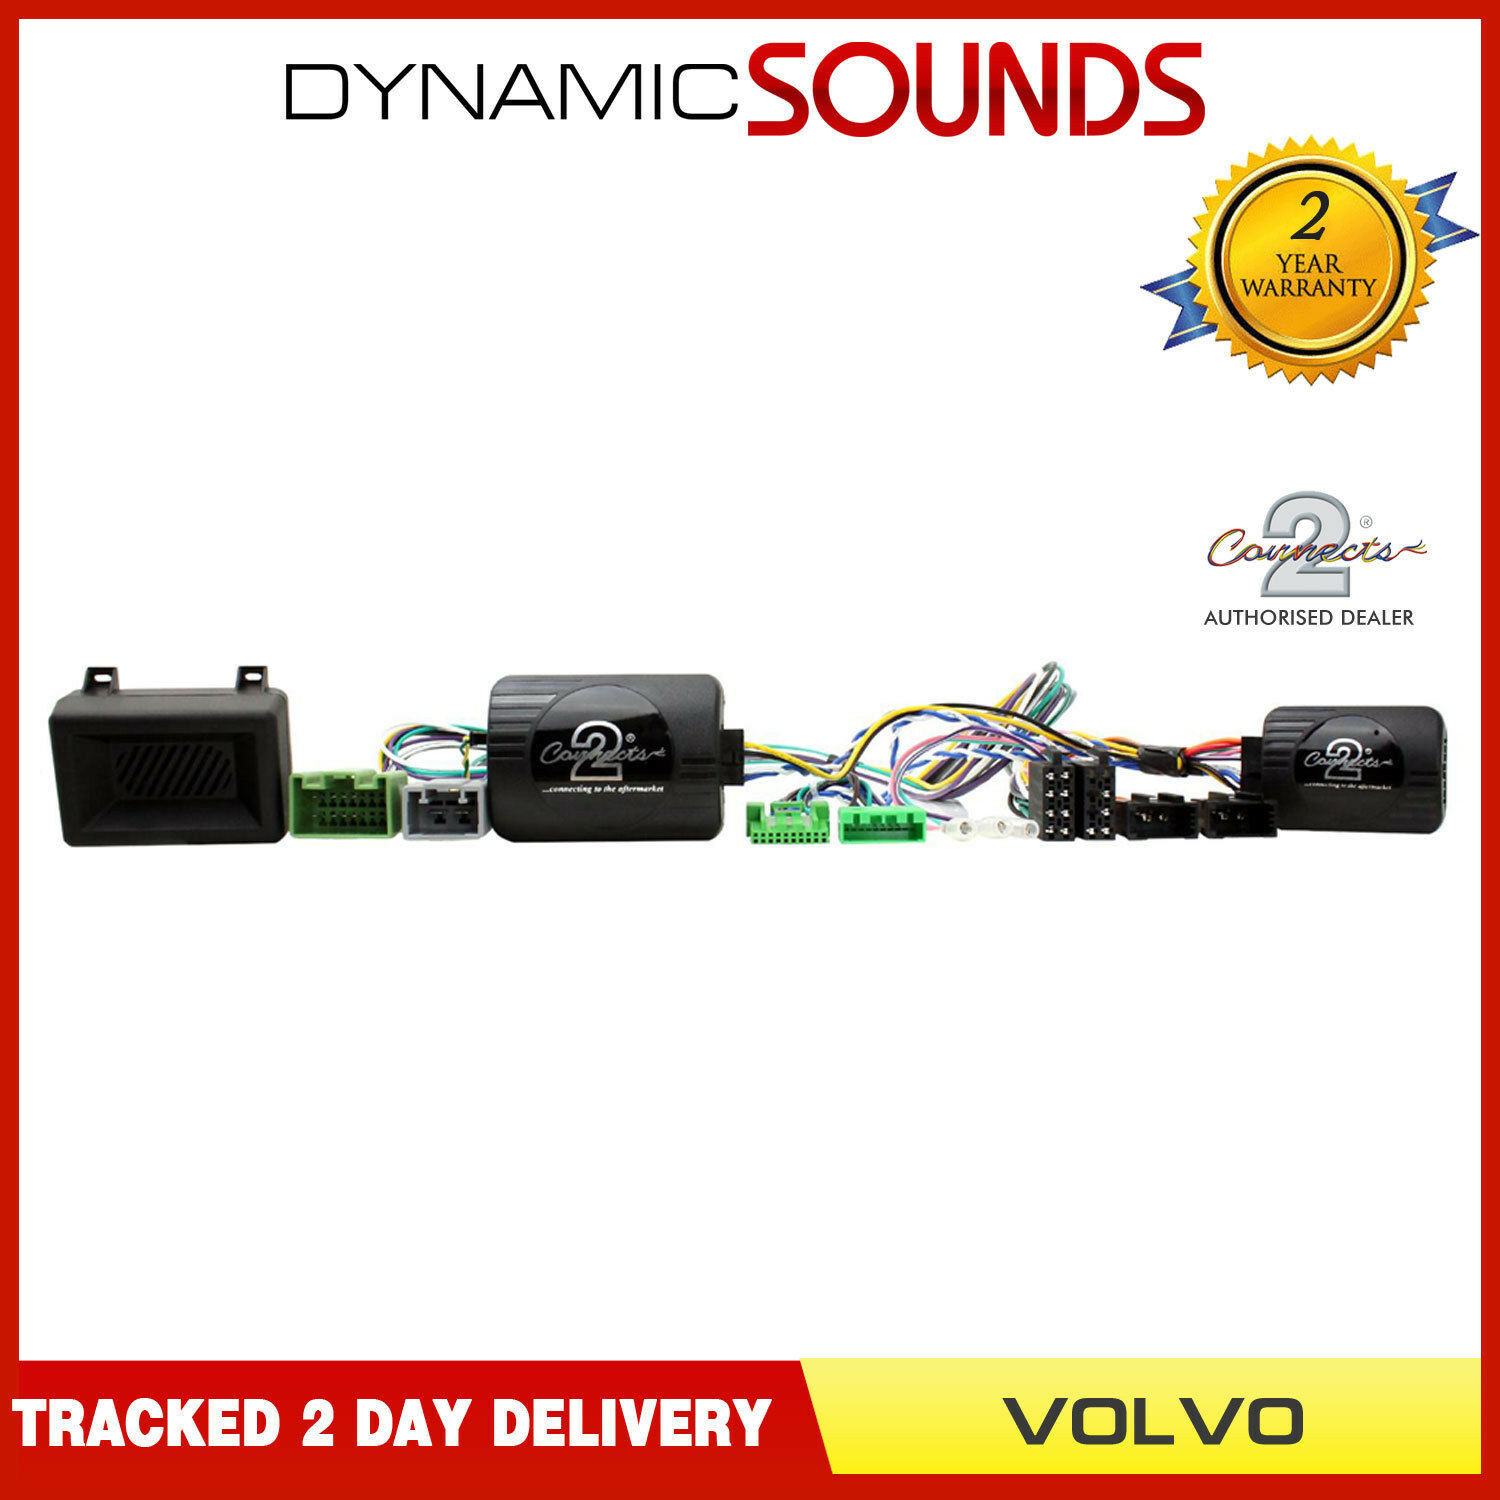 Amp Aftermarket Wiring Harness Xc90 Picturesque Bypass Sony Rear Parking Sensor Steering Wheel Kit For Volvo 1500x1500